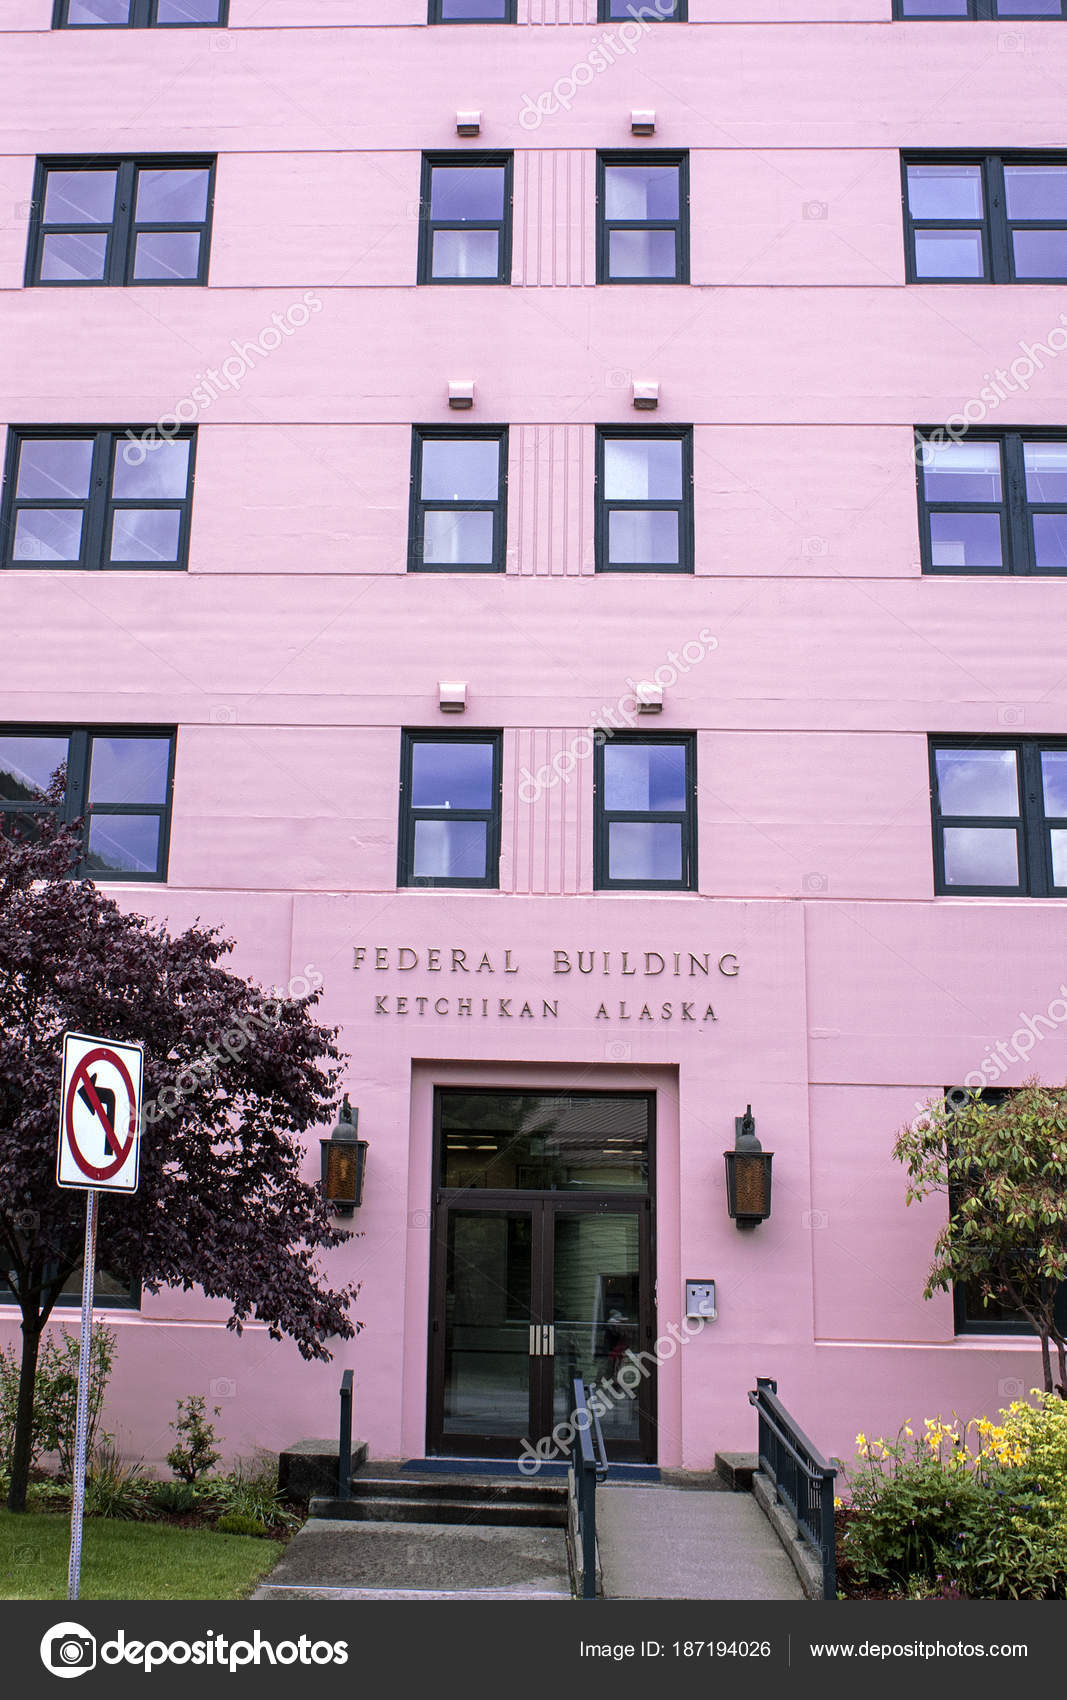 Federal Building Ketchikan Alaska Entrance Pink Color – Stock ...